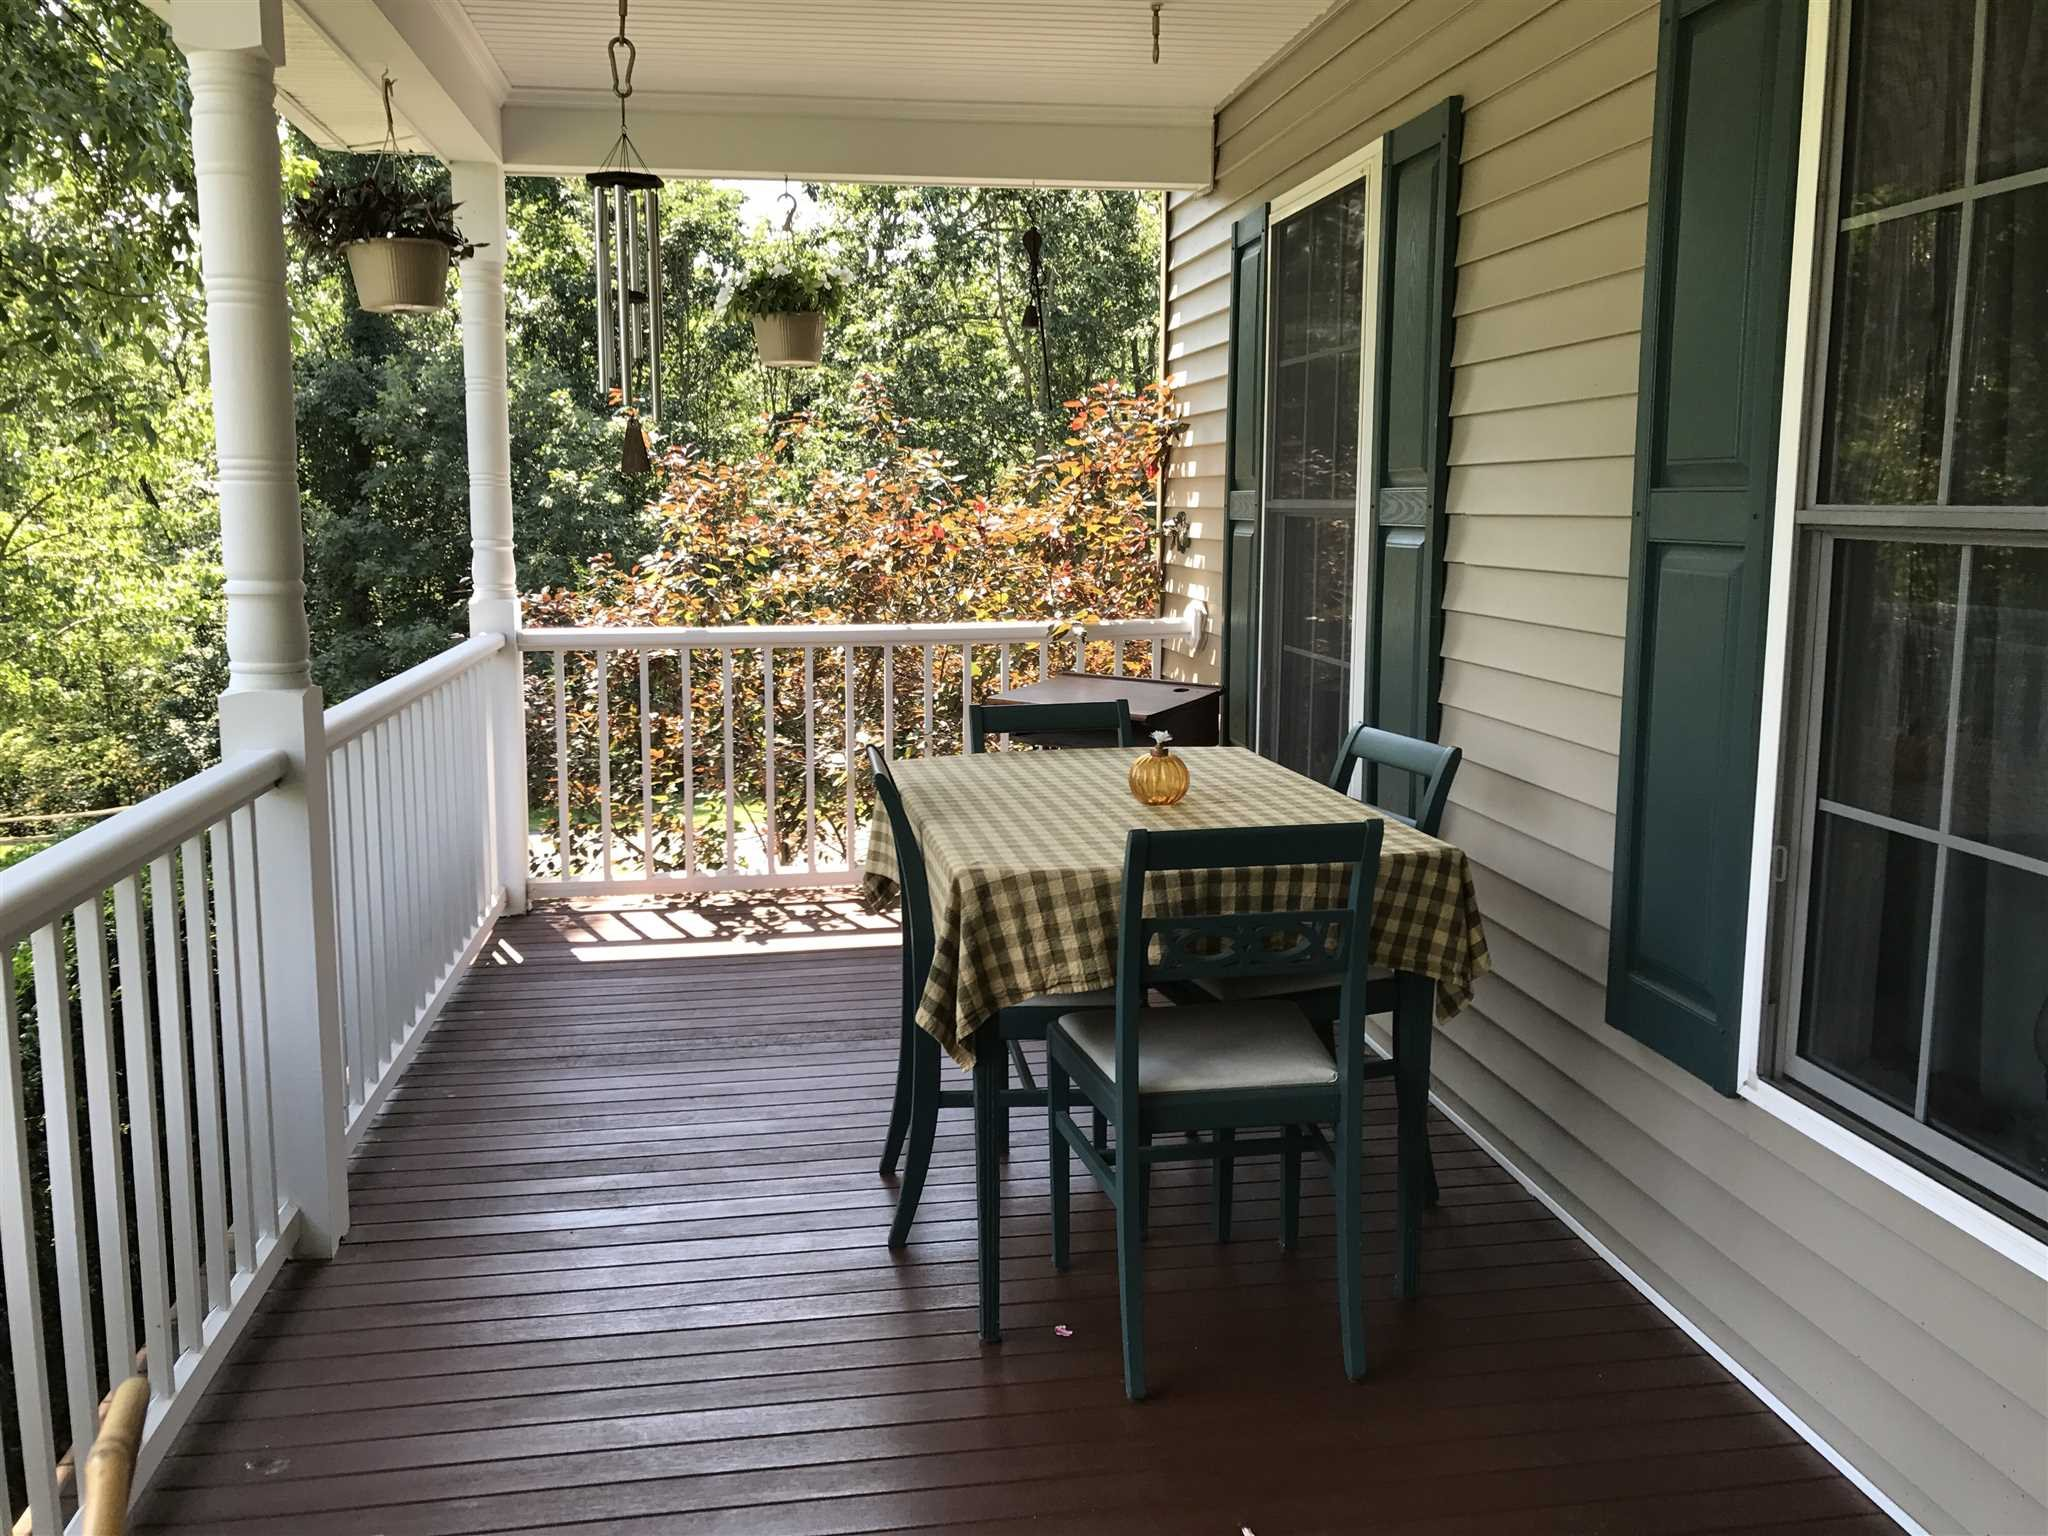 Additional photo for property listing at 123 COTTONTAIL ROAD 123 COTTONTAIL ROAD Ancram, New York 12503 United States